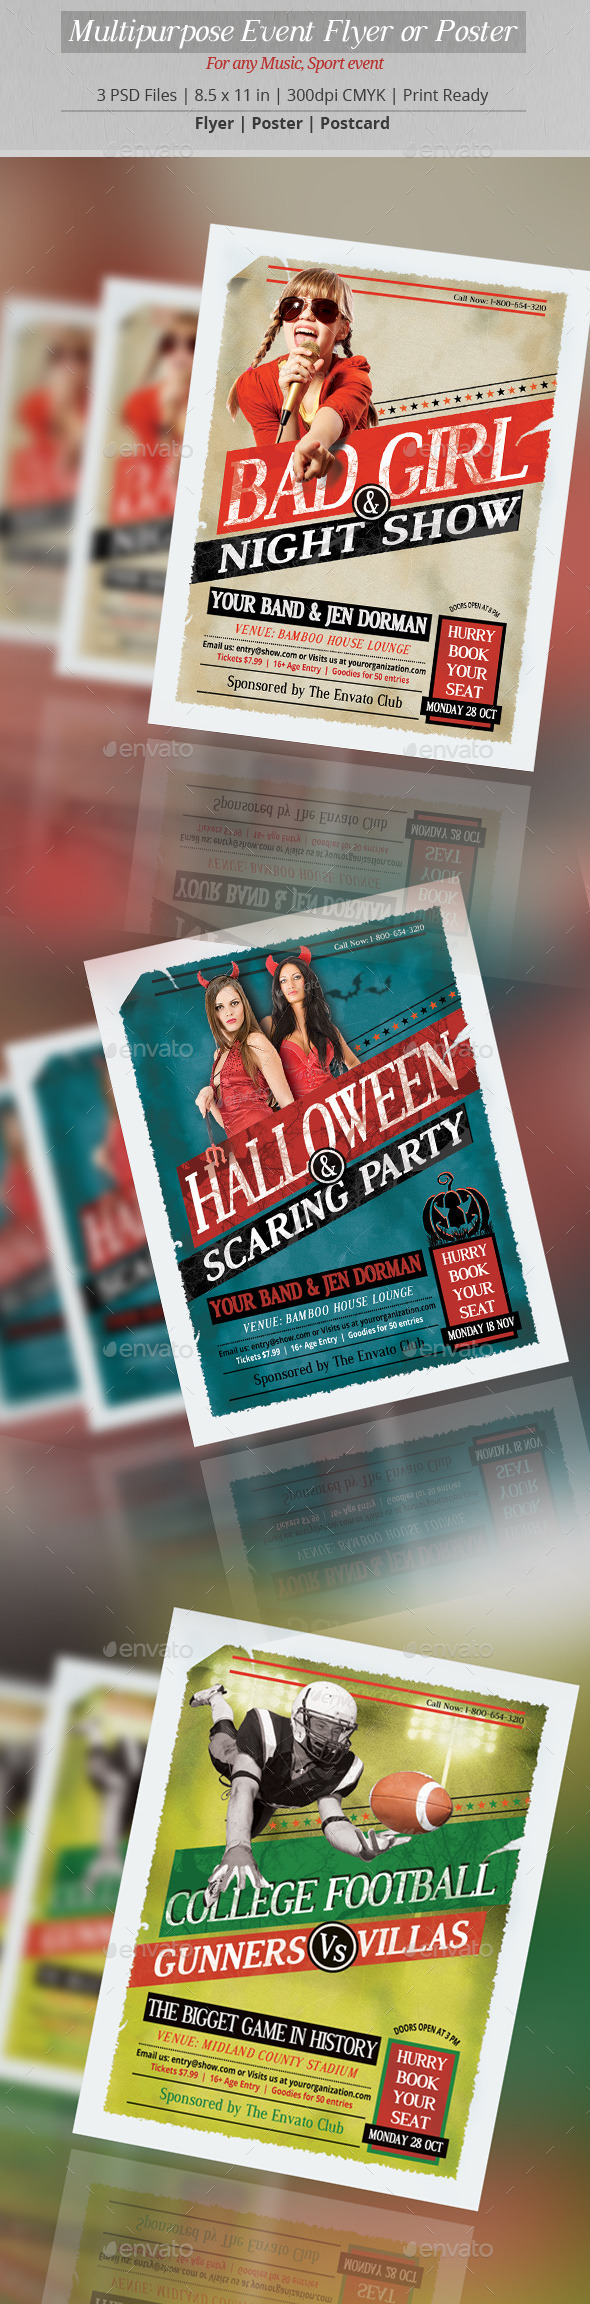 GraphicRiver Multipurpose Event Flyer or Poster 8947991